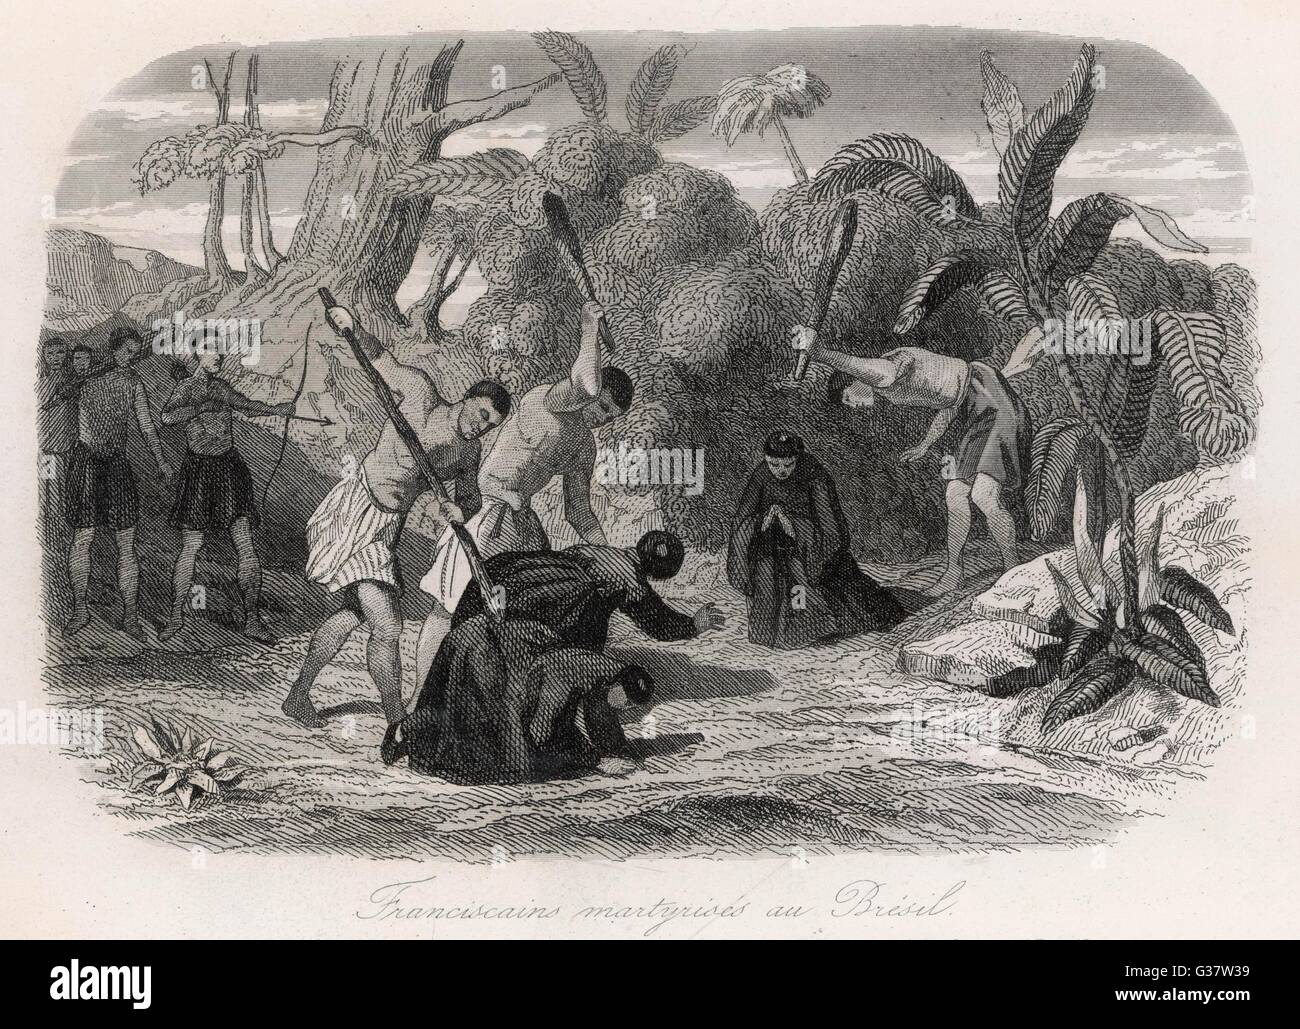 Franciscan missionaries  massacred         Date: 1500 - Stock Image